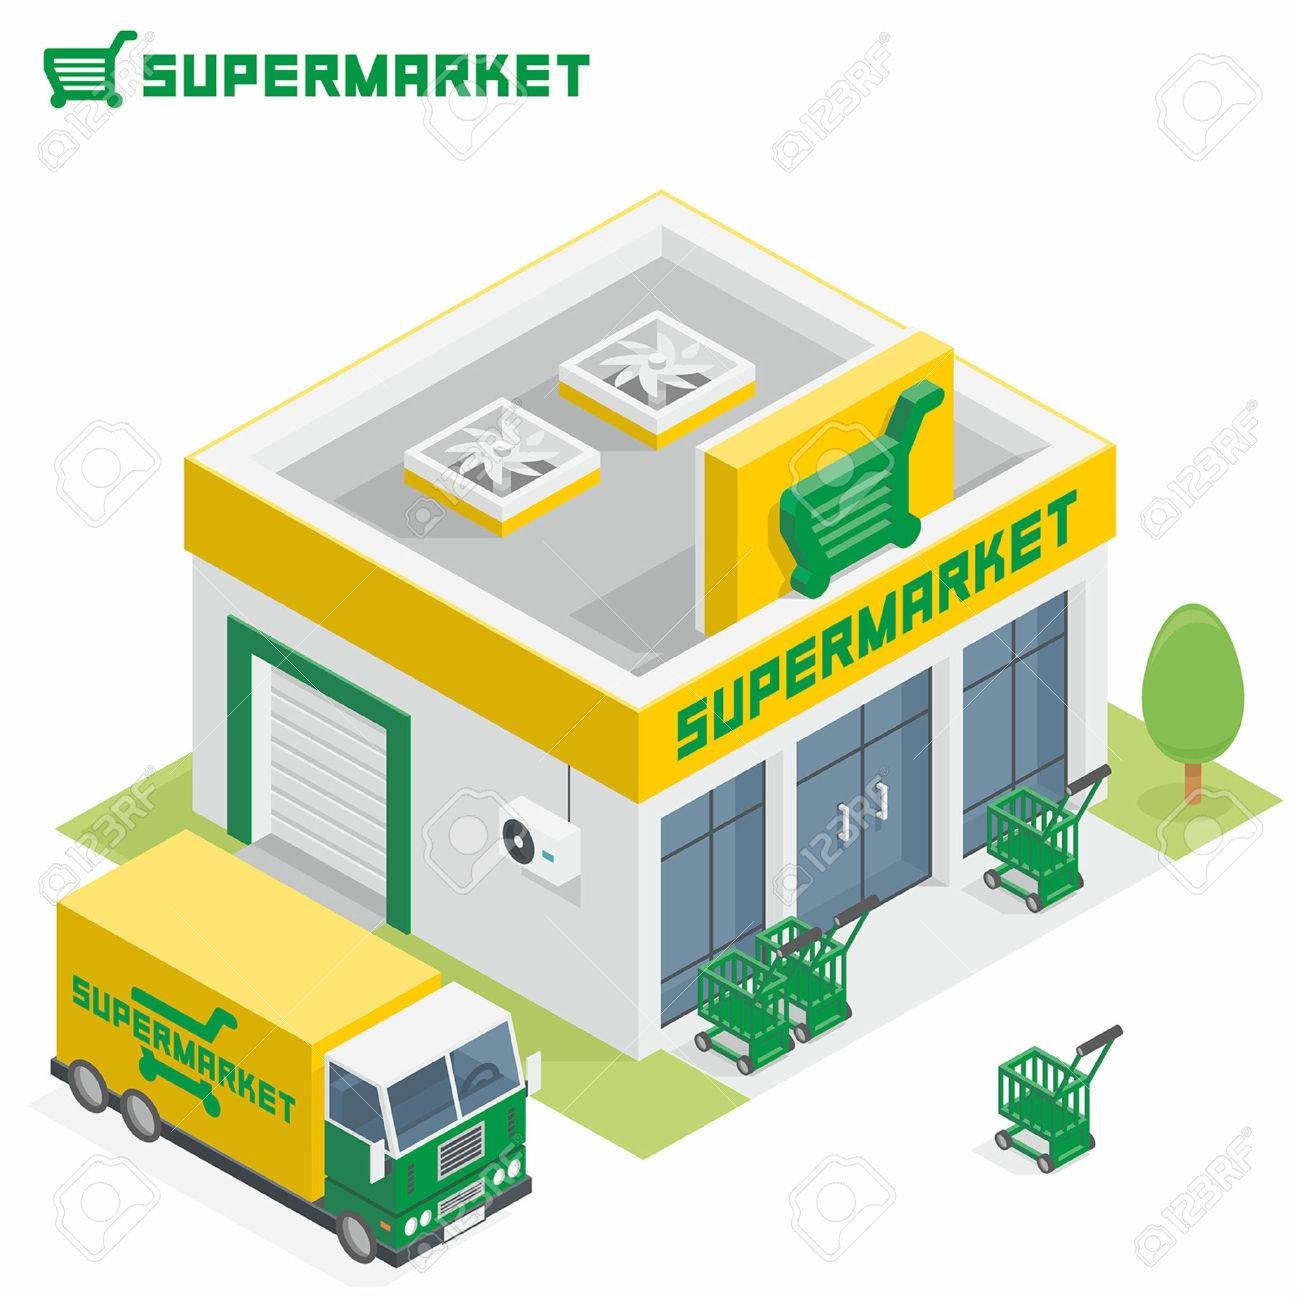 Supermarkt gebäude clipart  Supermarket Building Royalty Free Cliparts, Vectors, And Stock ...